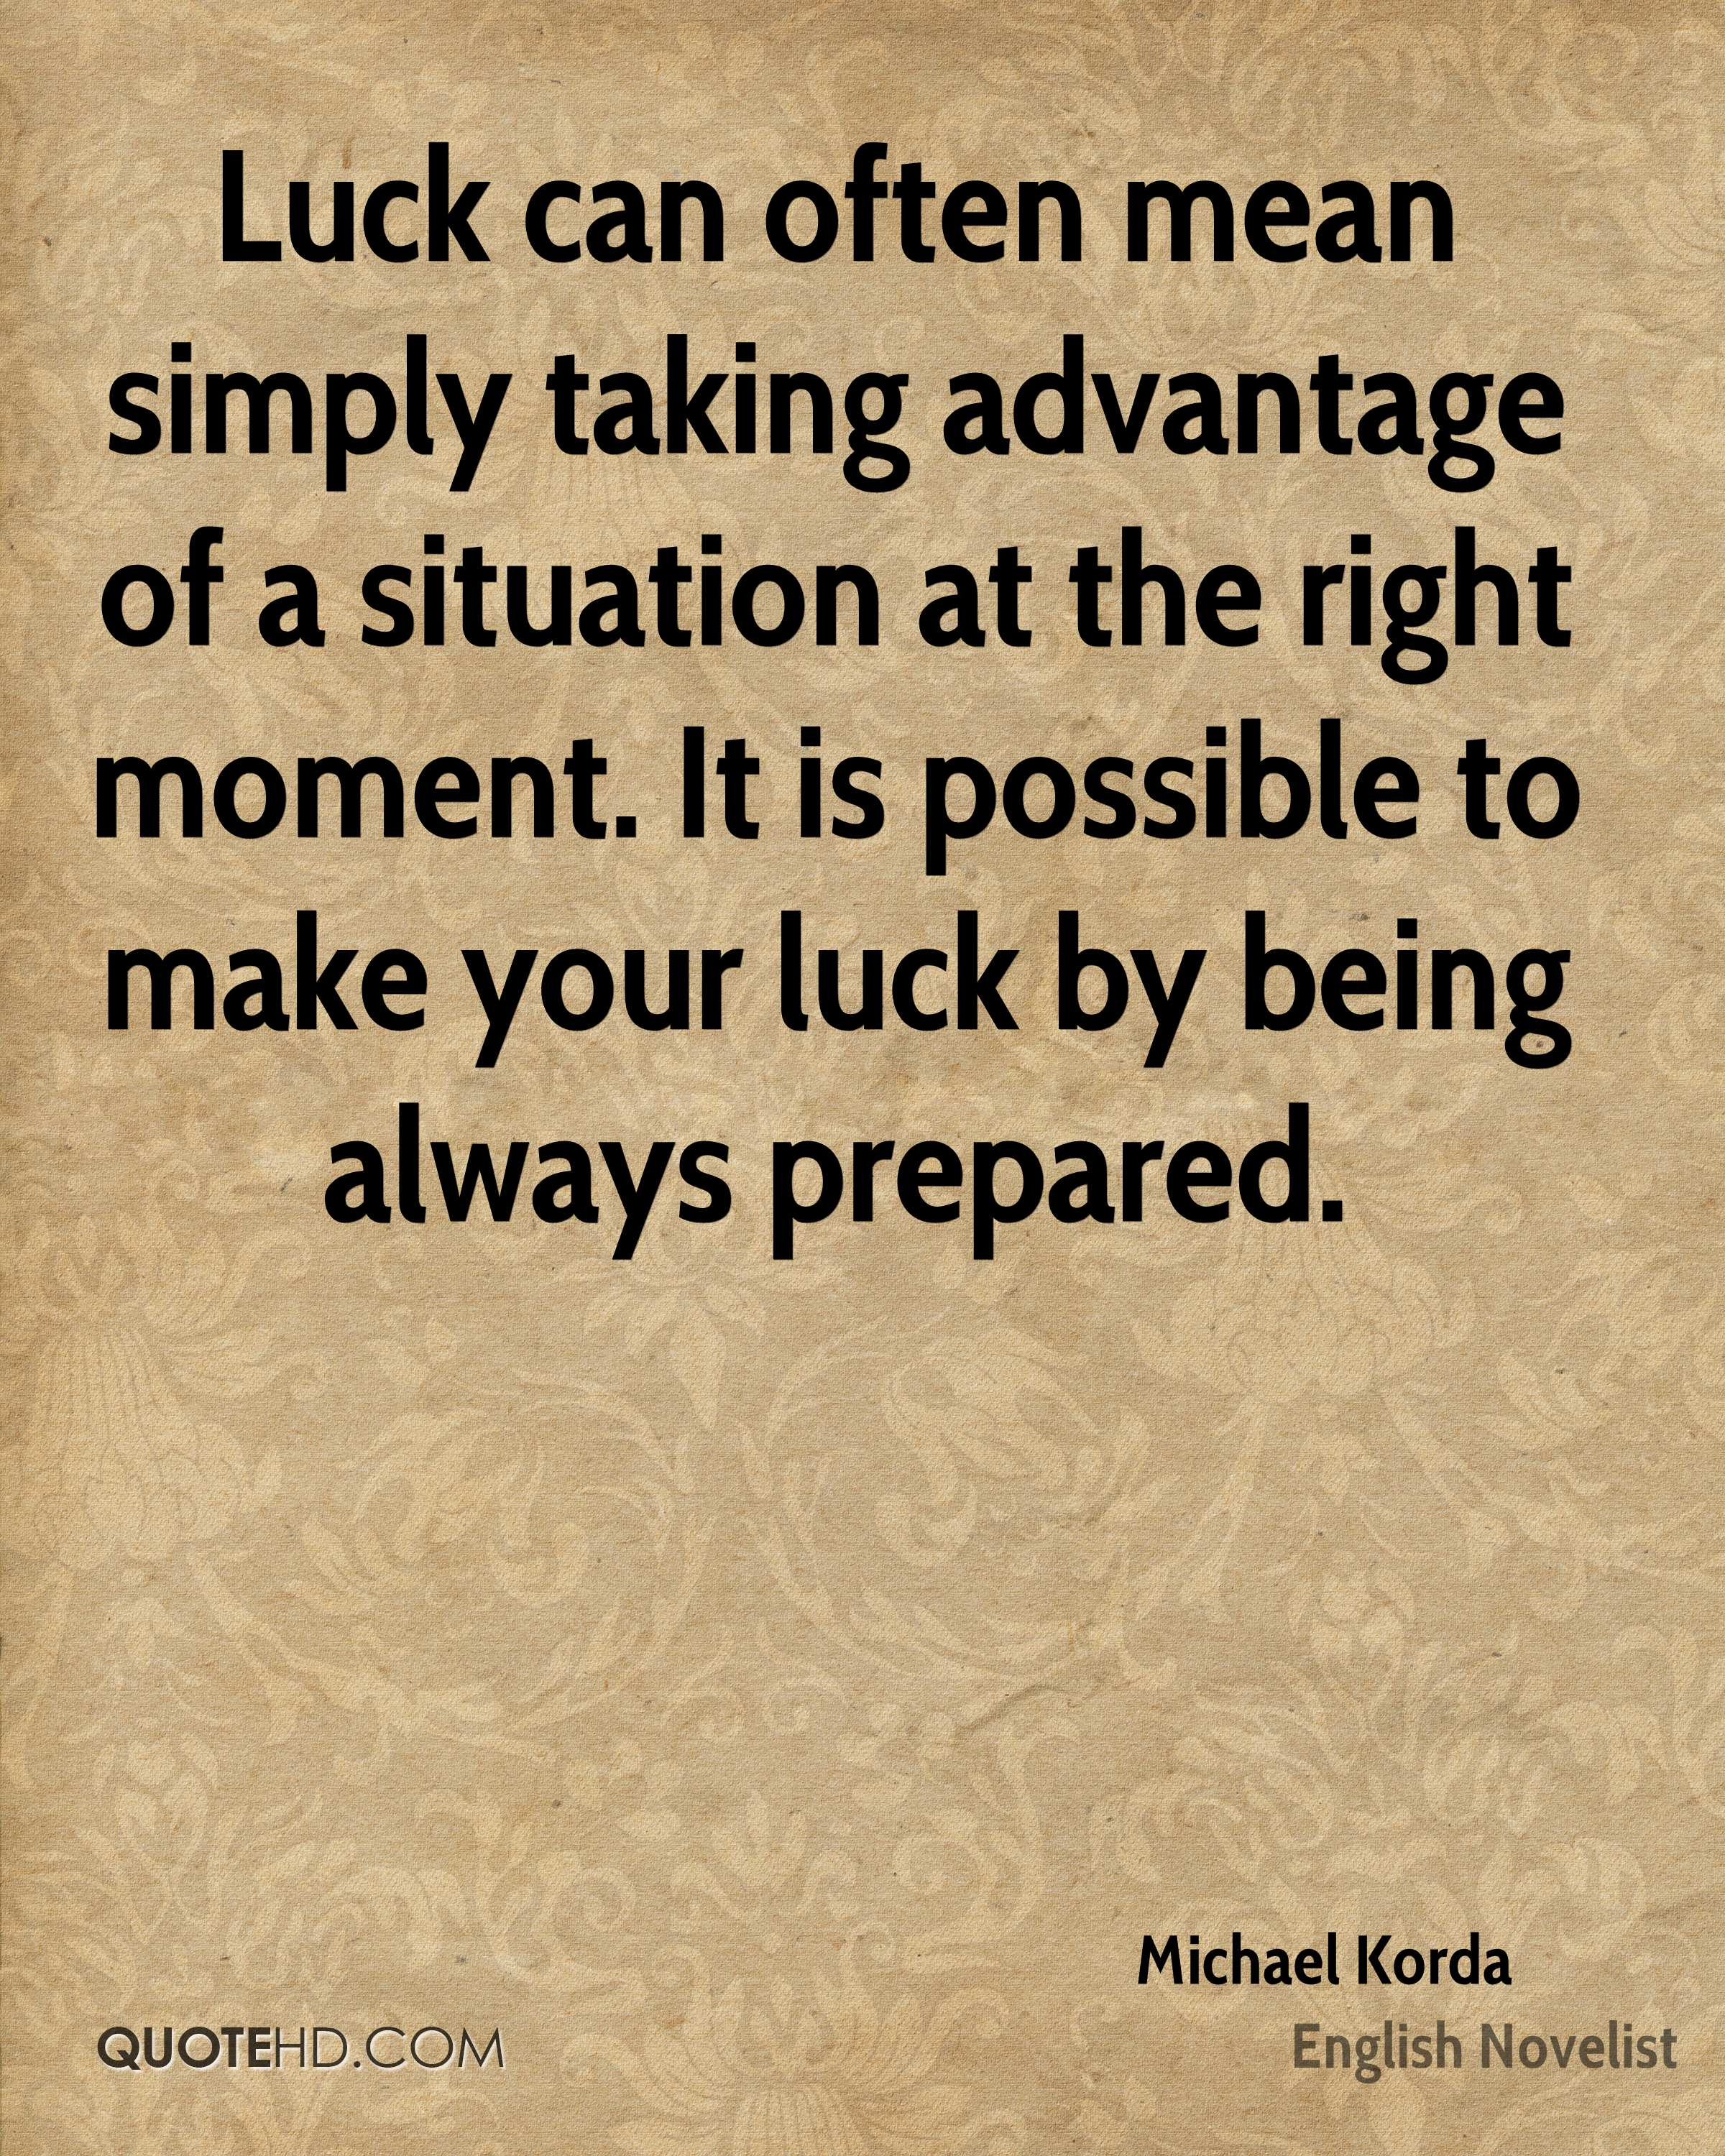 Luck can often mean simply taking advantage of a situation at the right moment. It is possible to make your luck by being always prepared.